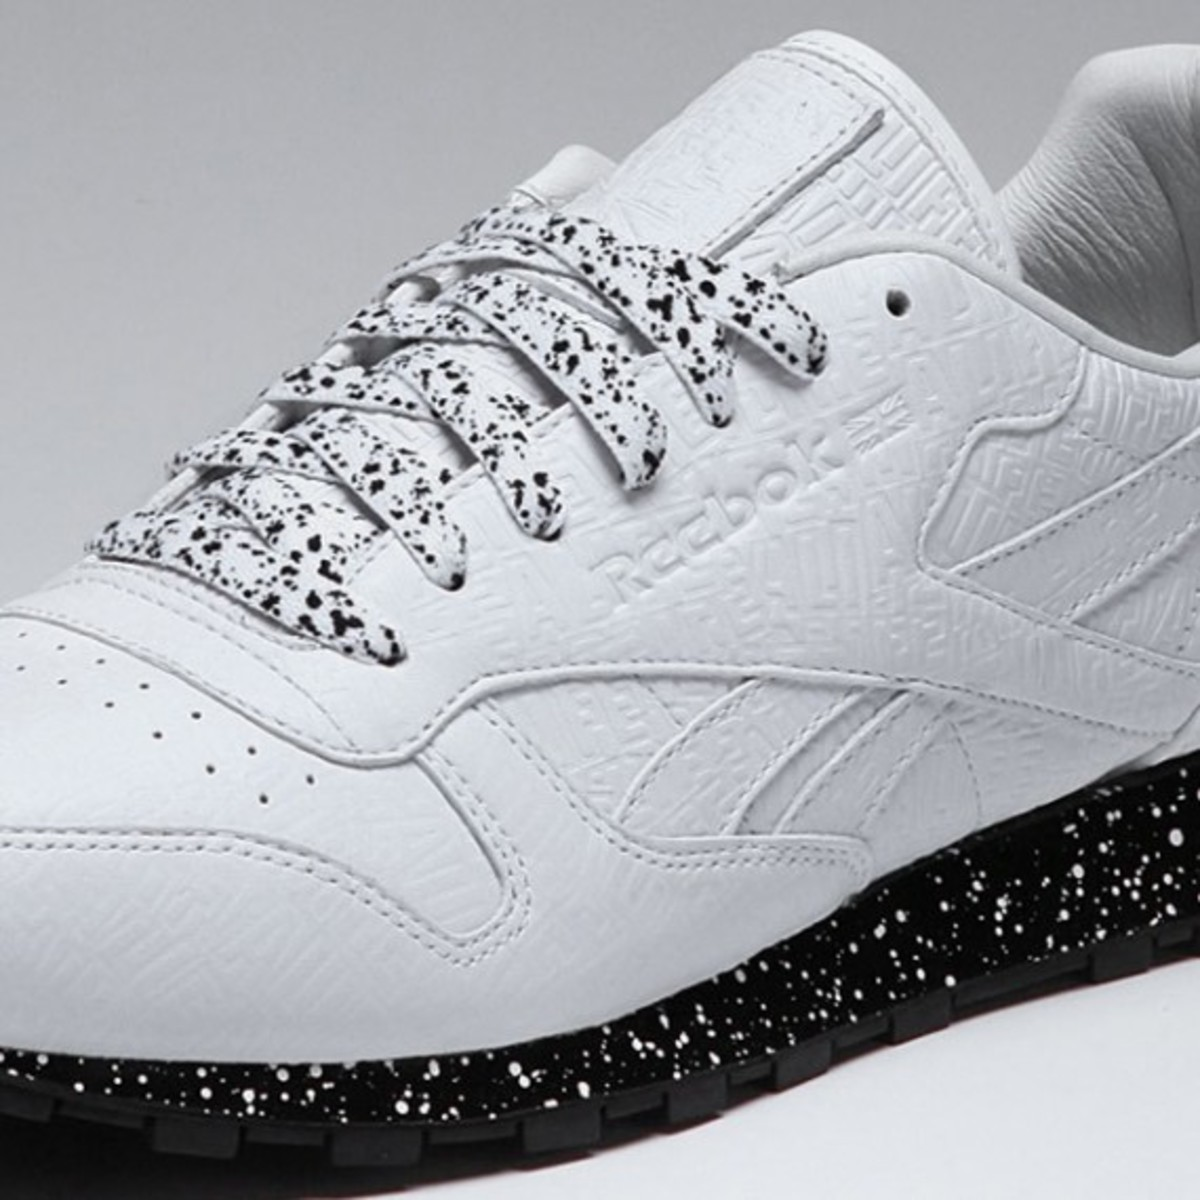 alife-reebok-classic-leather-lux-white-speck-04